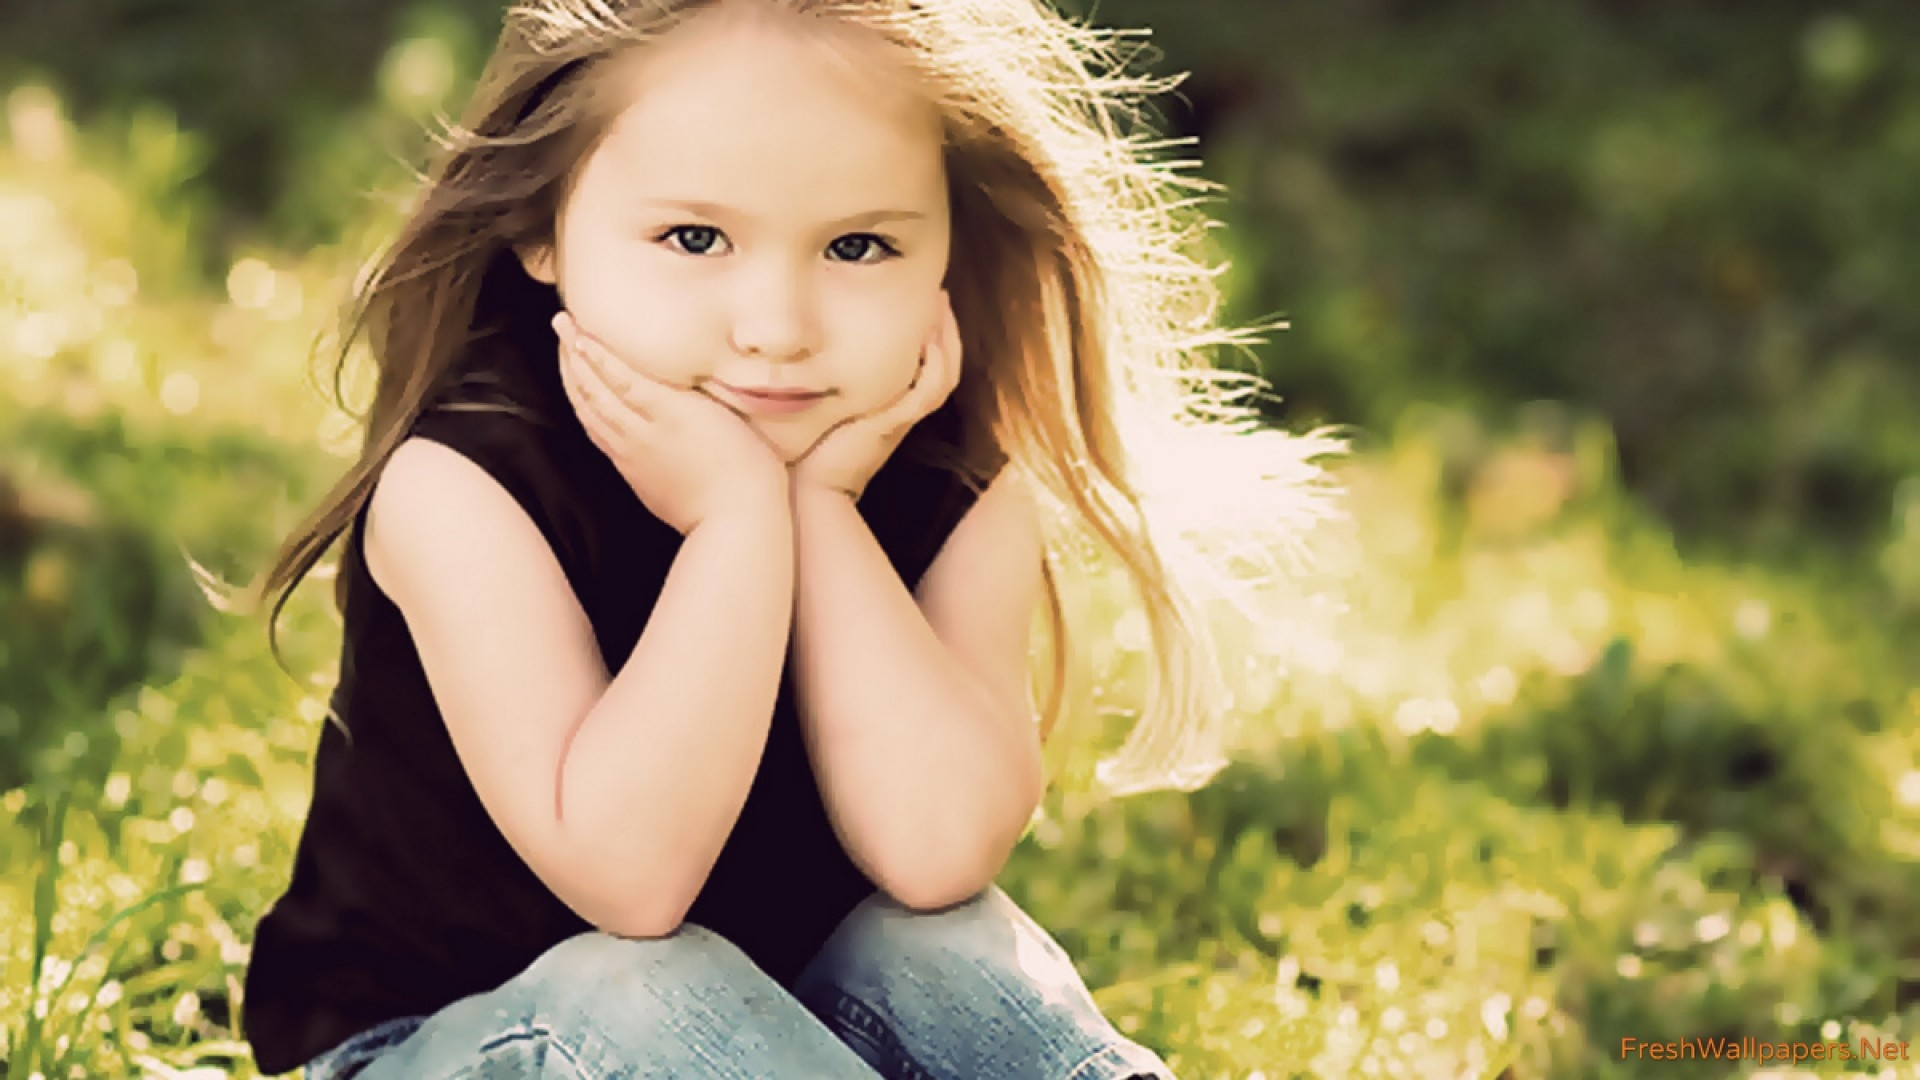 Sweet Small Girl Hd Wallpaper Cool And Stylish Profile Pictures For Girls Review